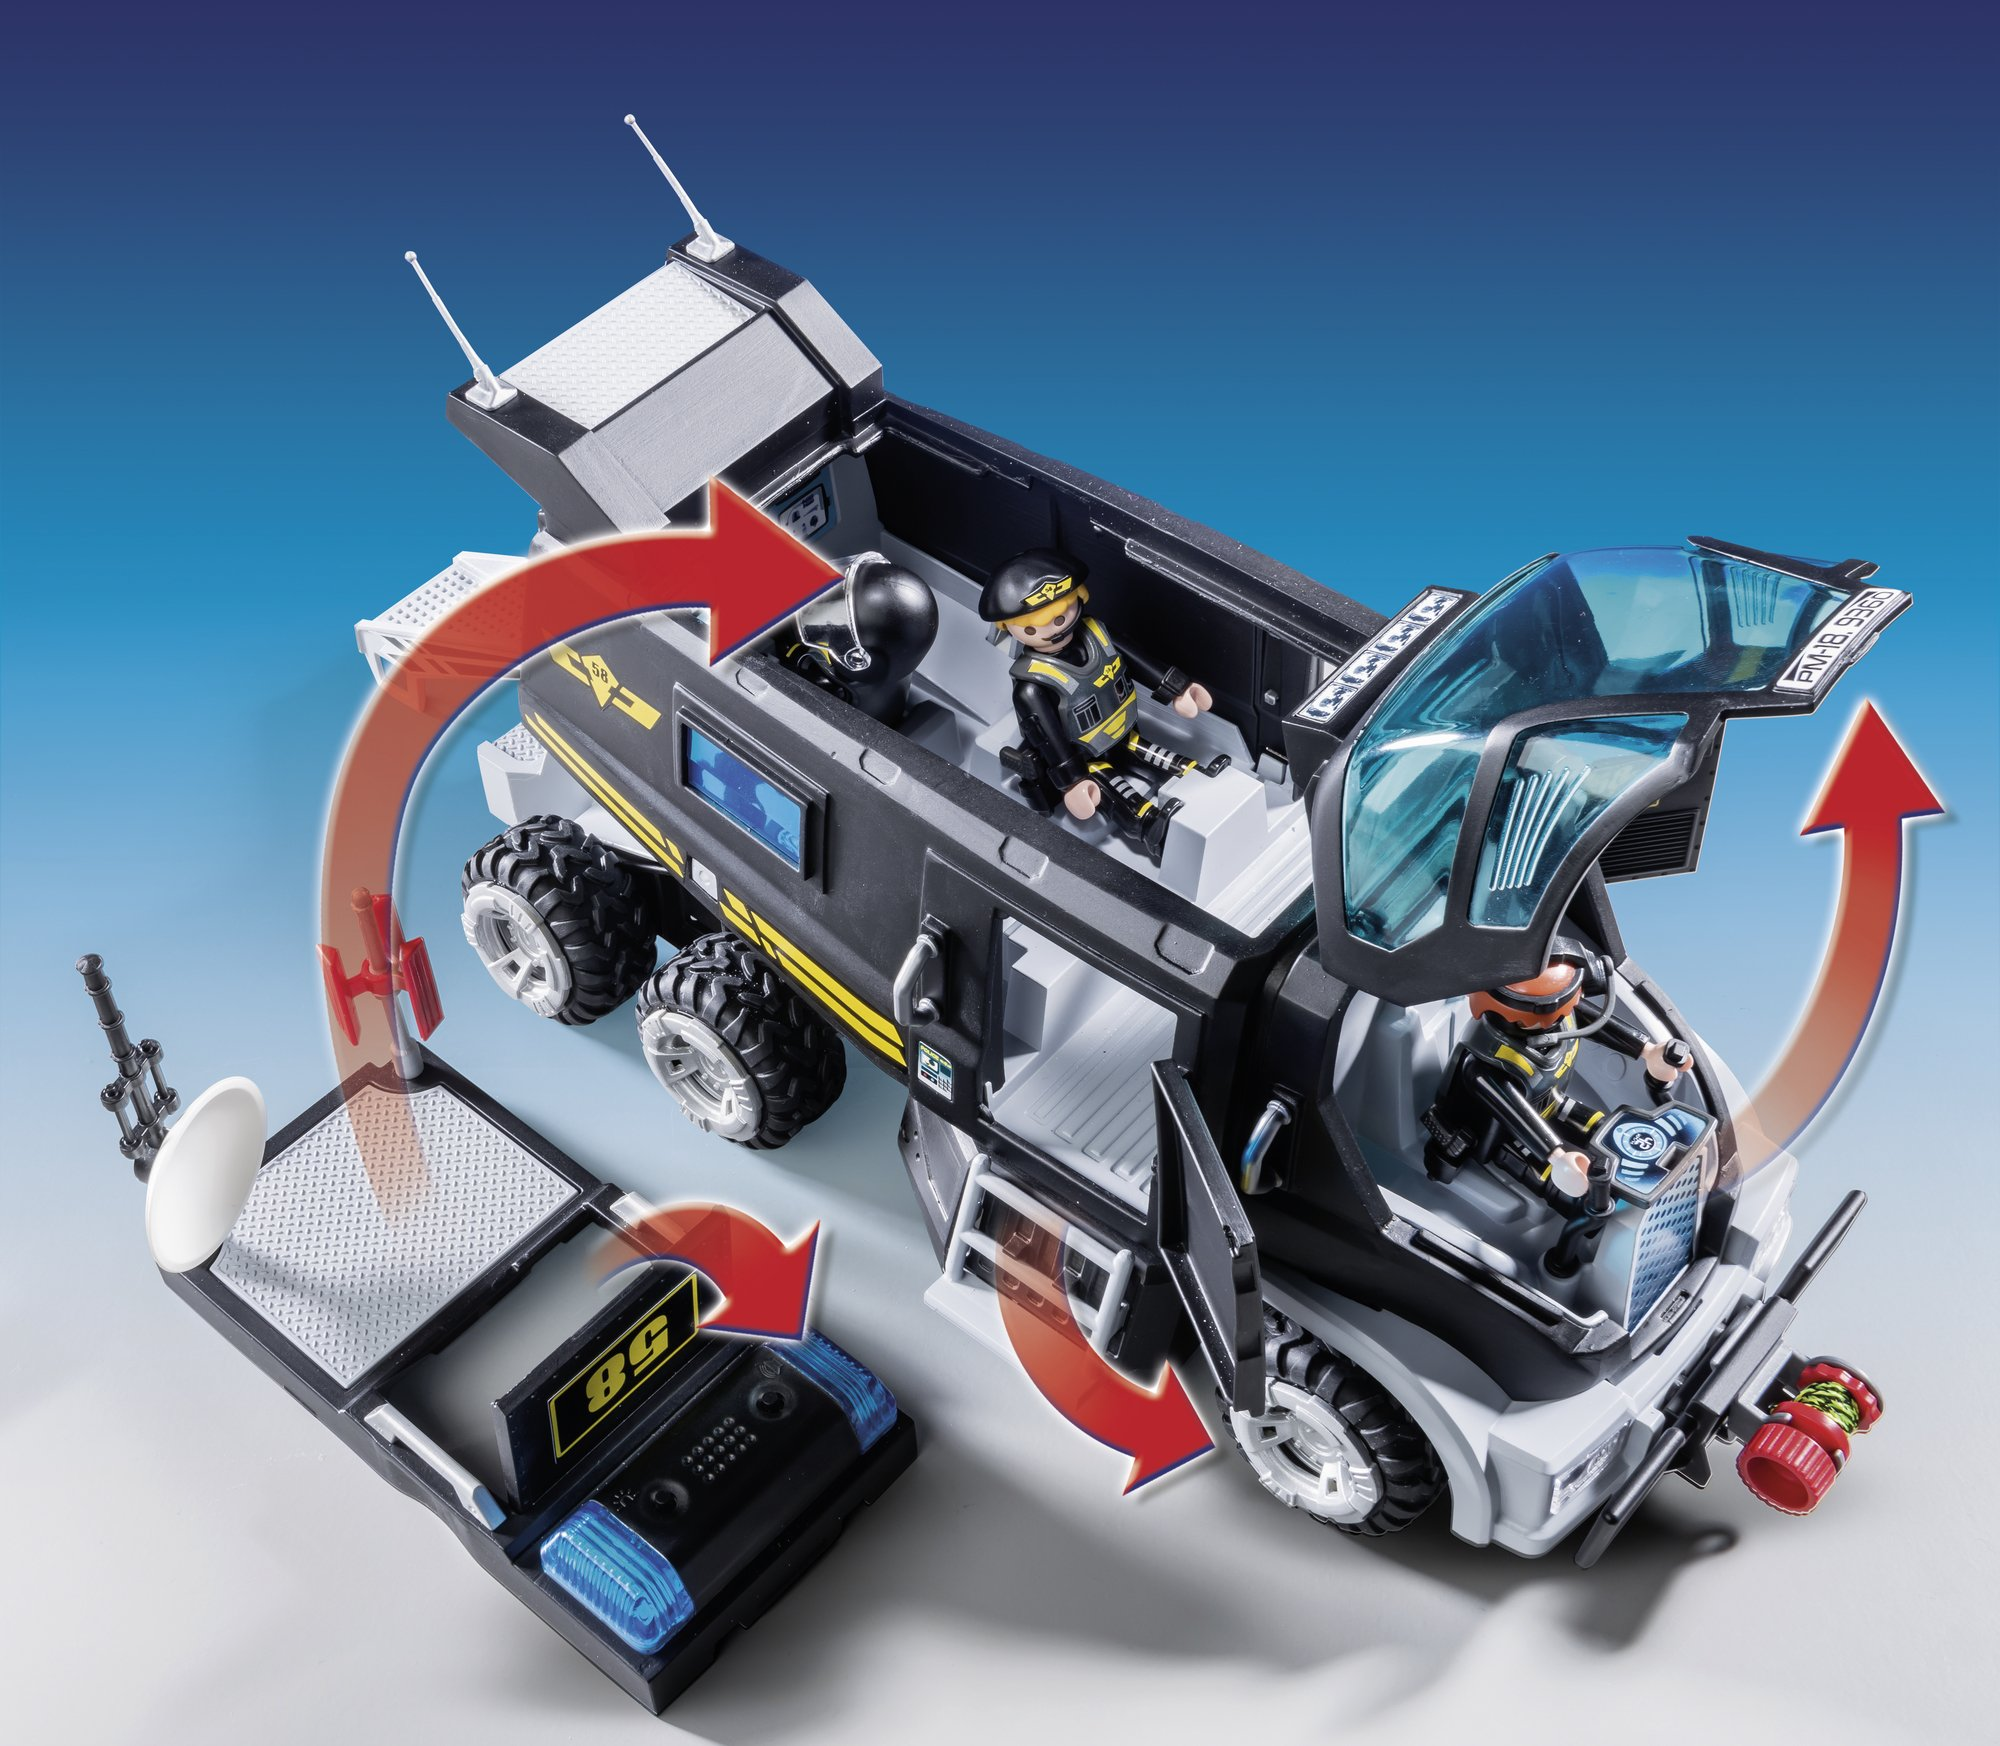 PLAYMOBIL 9360 SWAT Team truck with light and sound - NEW 2018 by PLAYMOBIL® (Image #3)